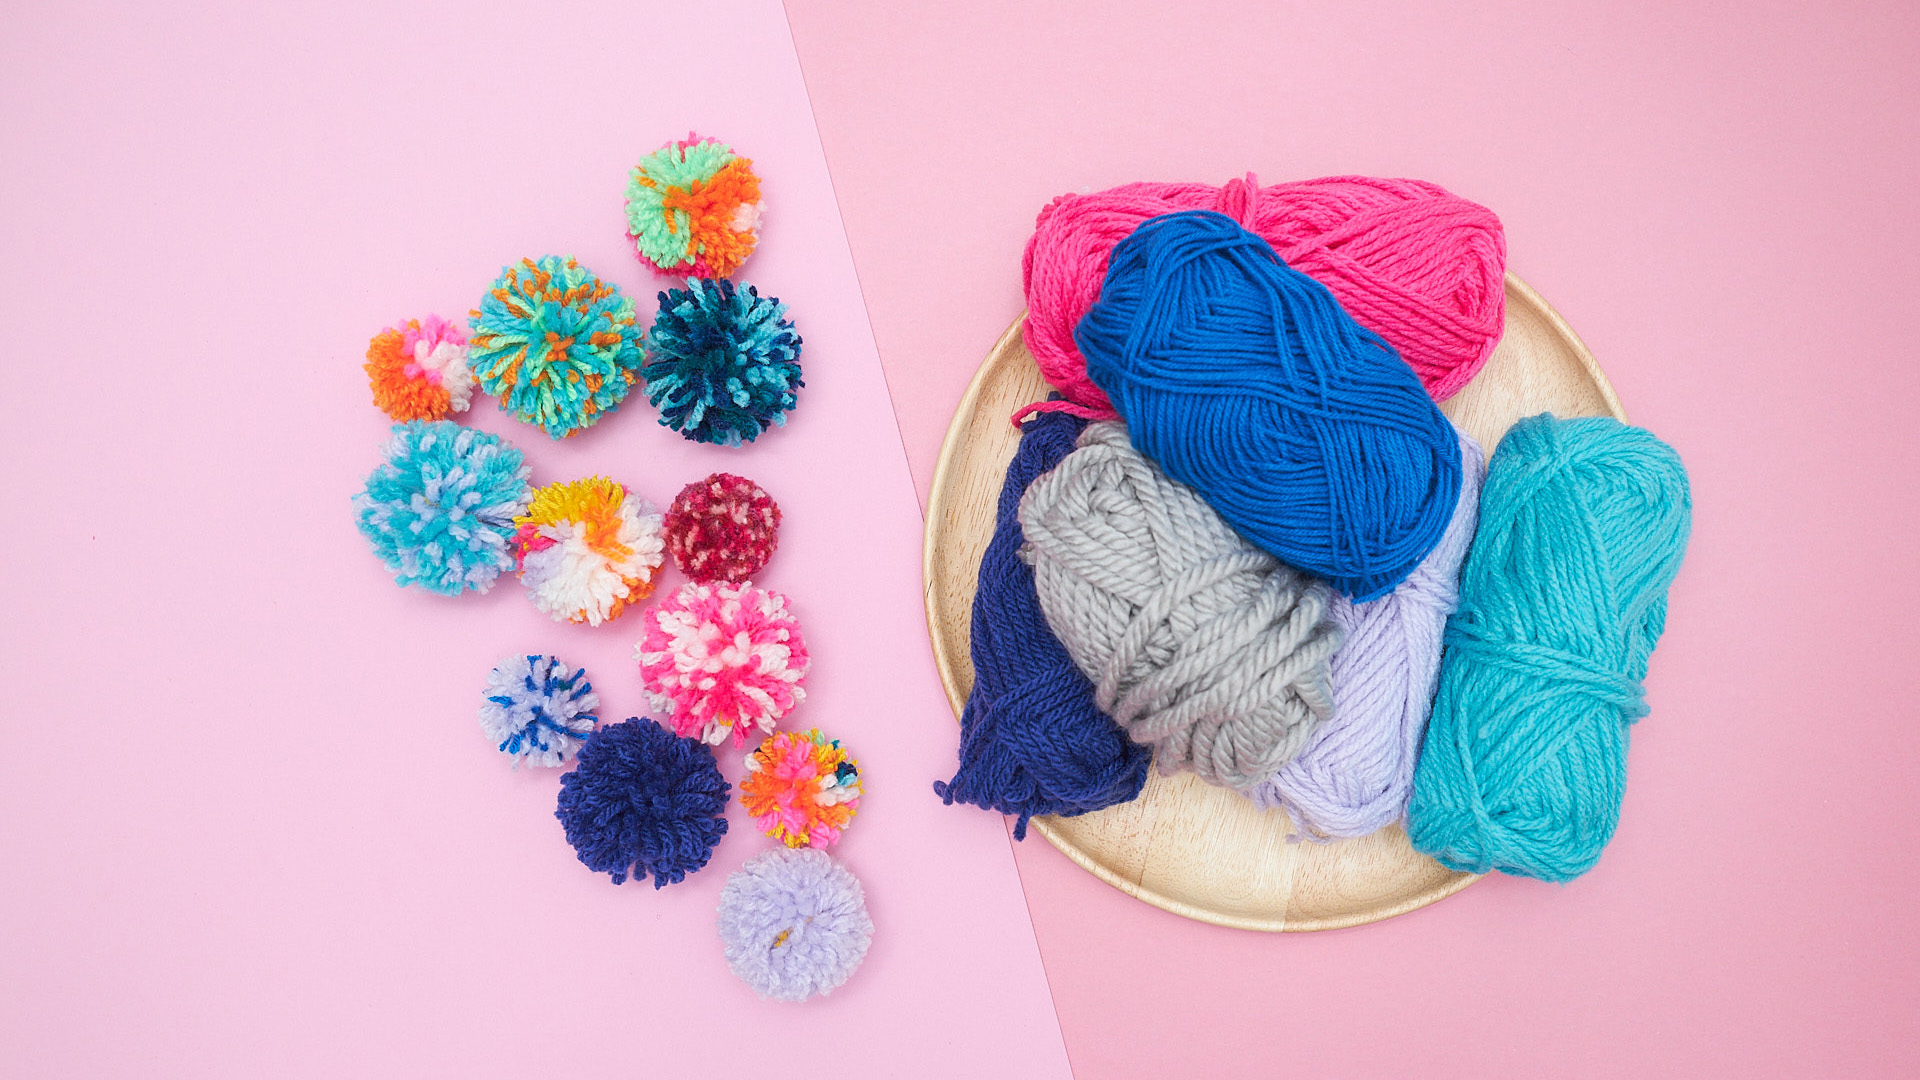 5-Minute DIY: Make Your Own Fluffy Pom Poms